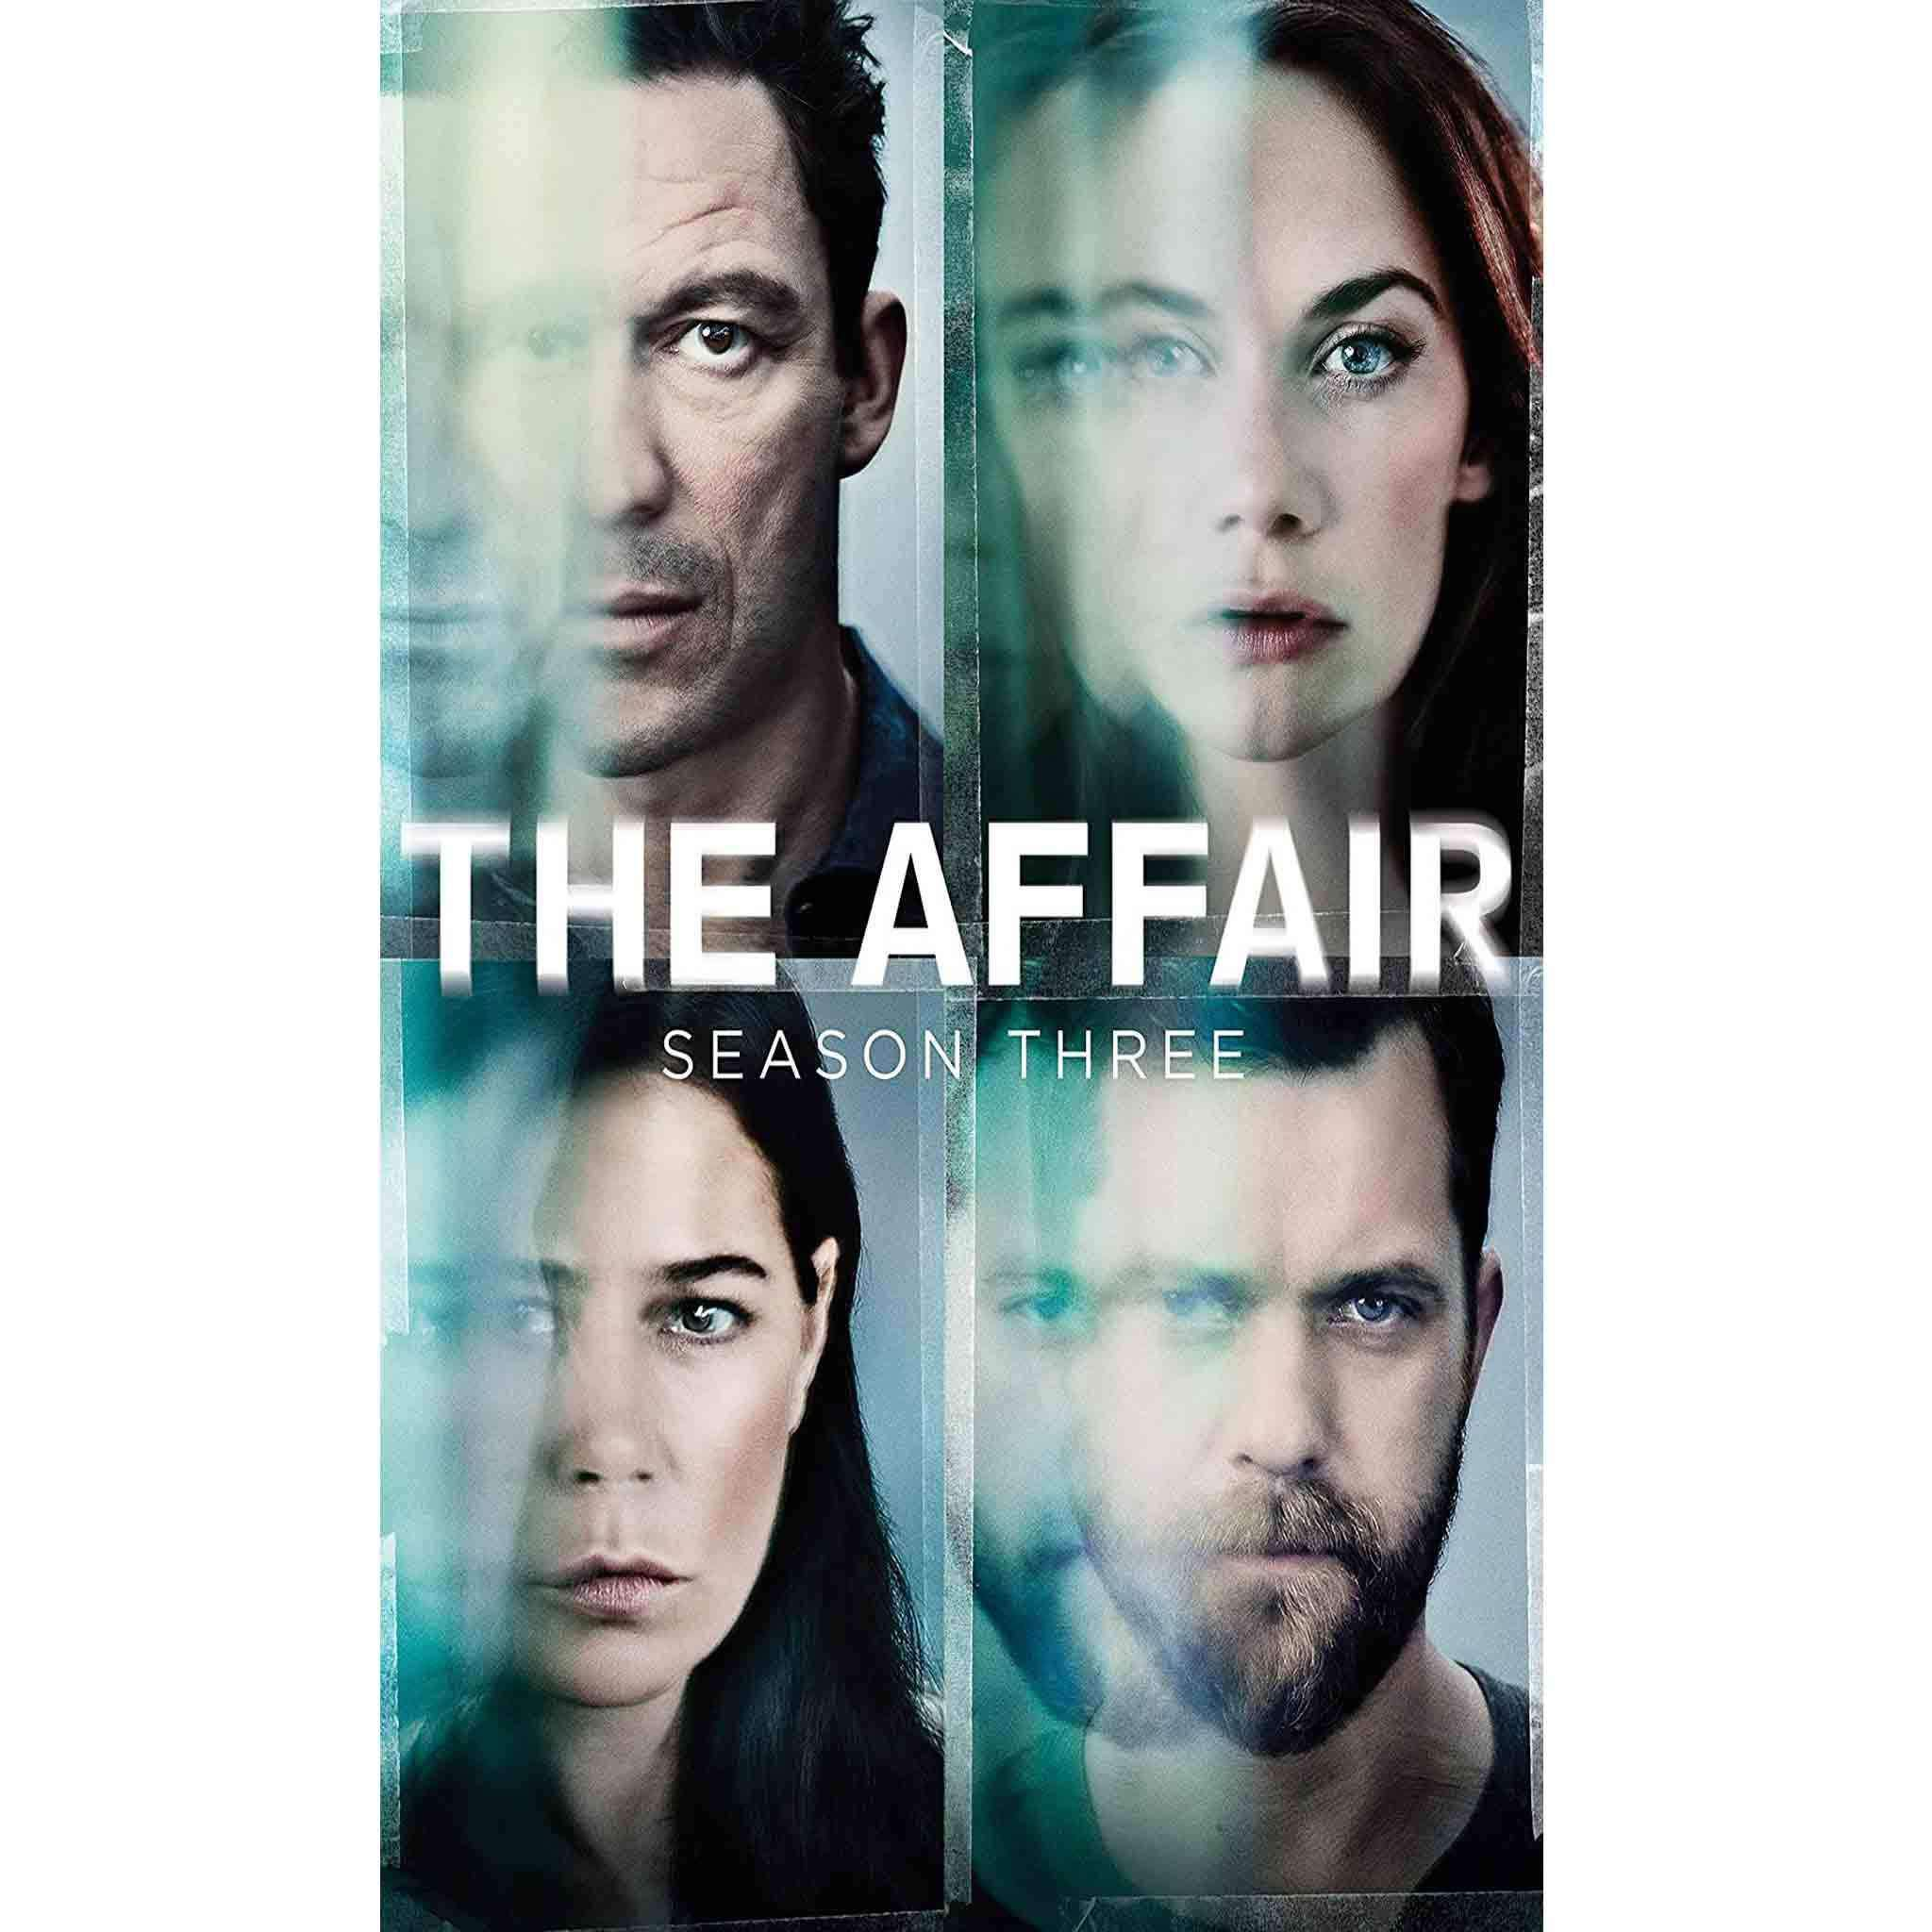 The Affair Season 3 (DVD) - DVDsHQ